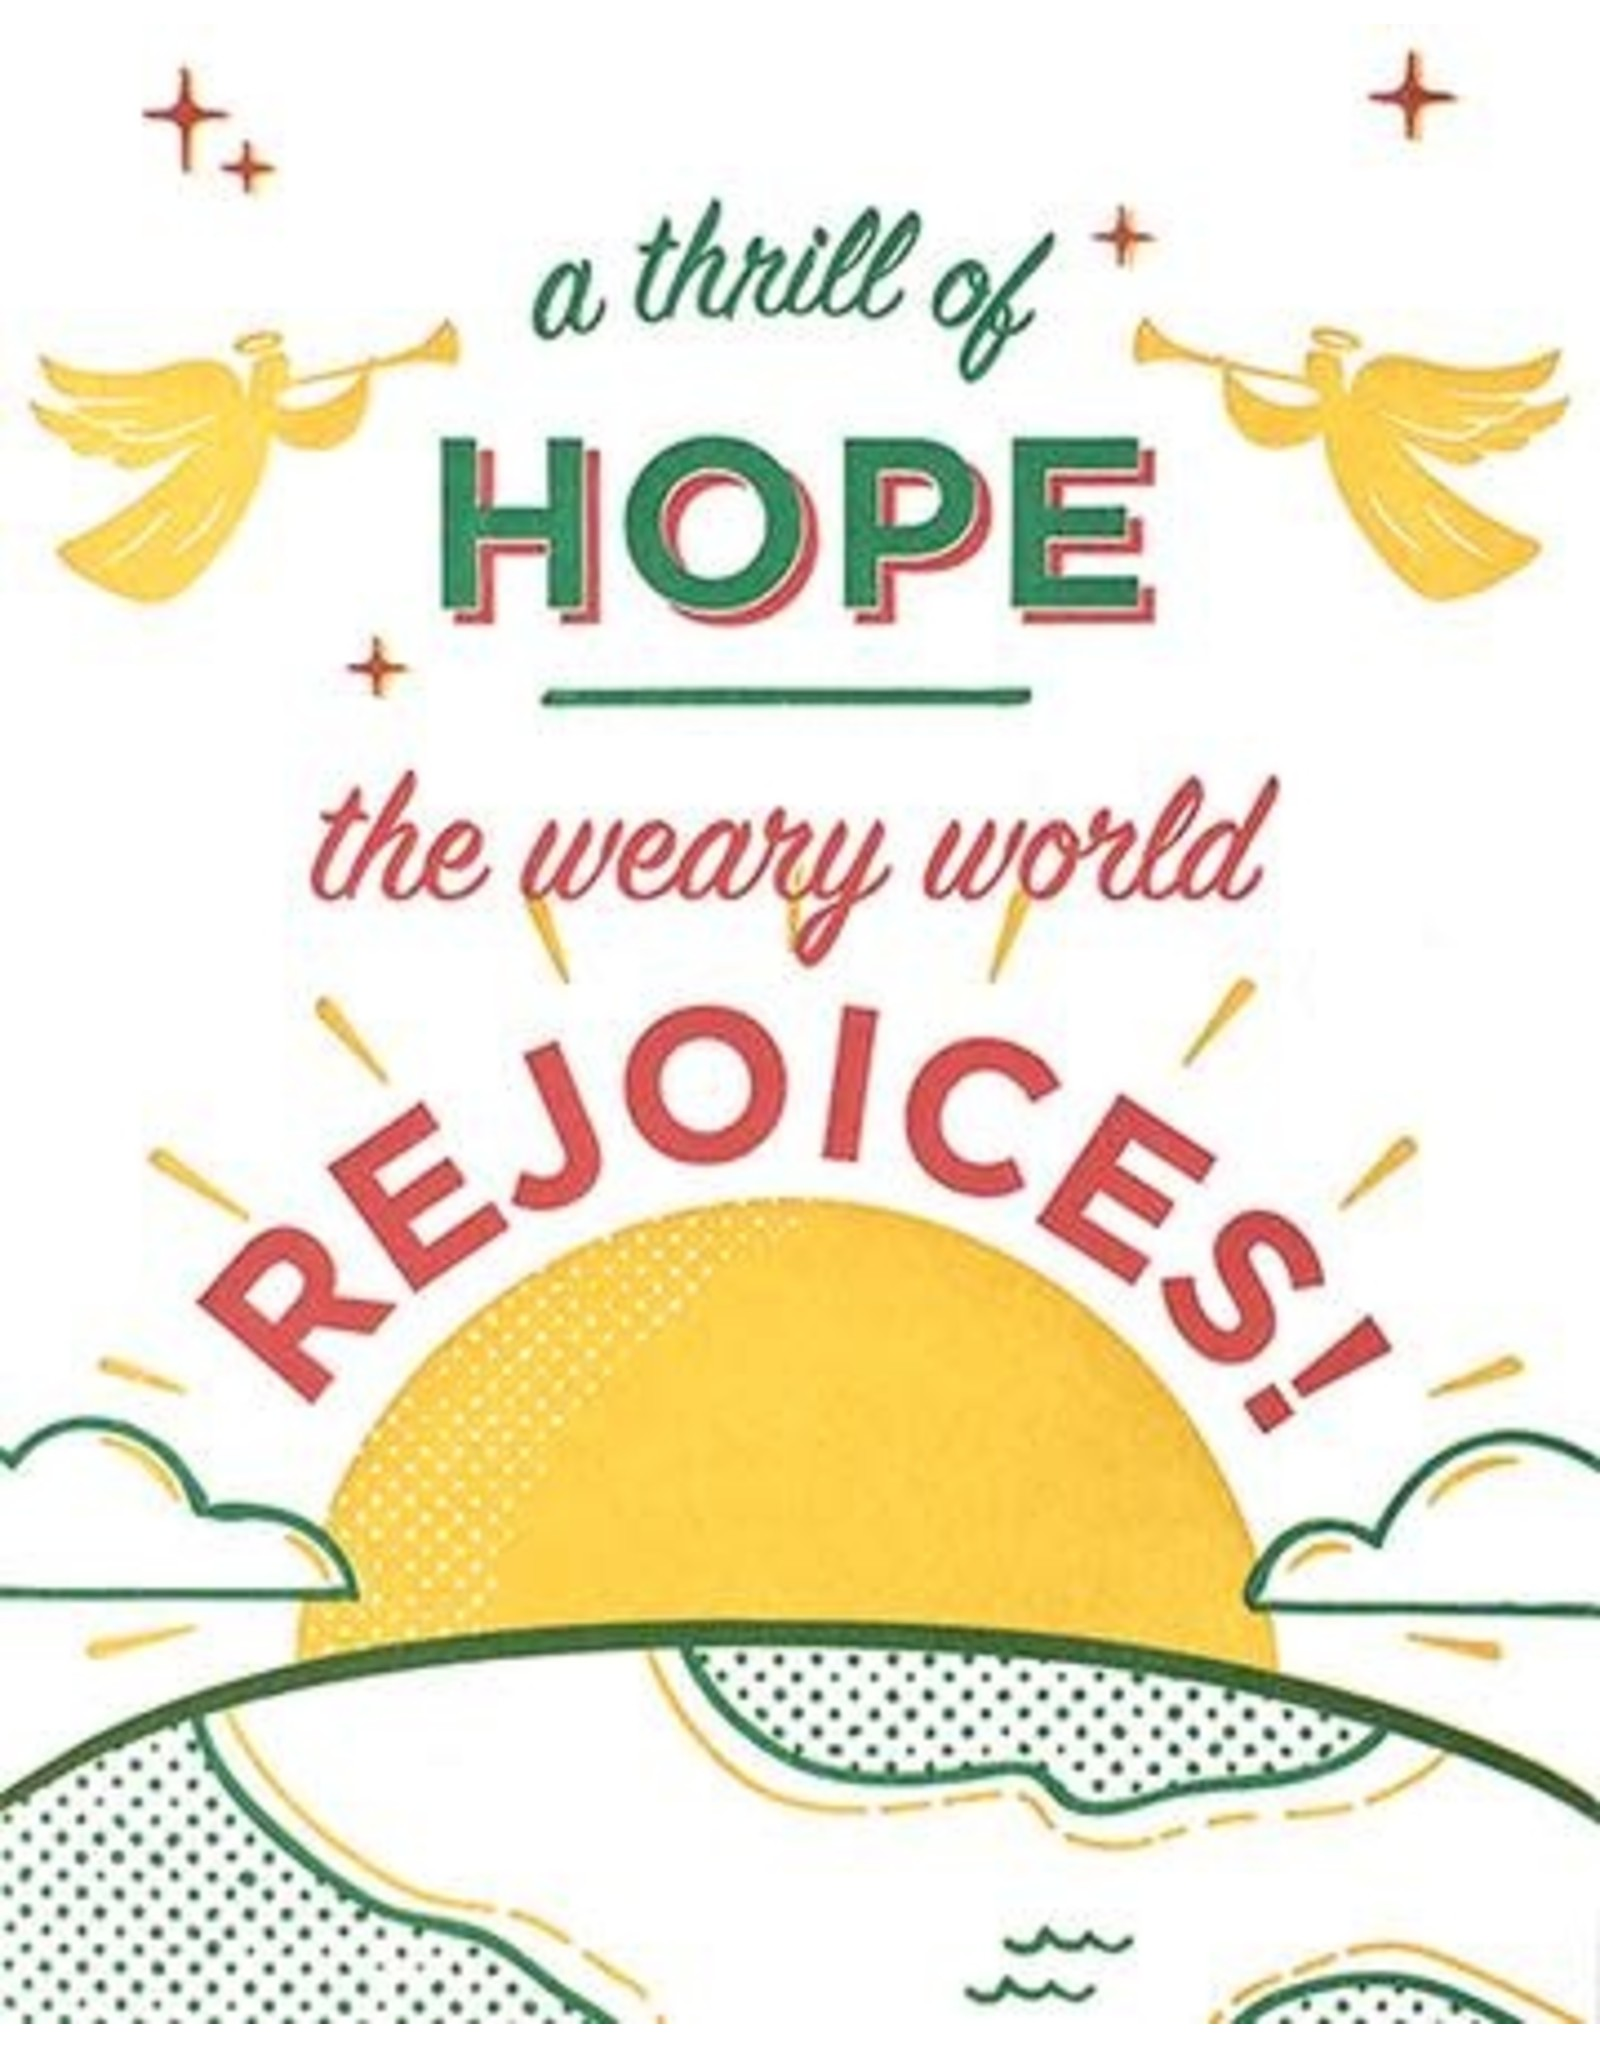 Good Paper Thrill of Hope Greeting Card, Philippines